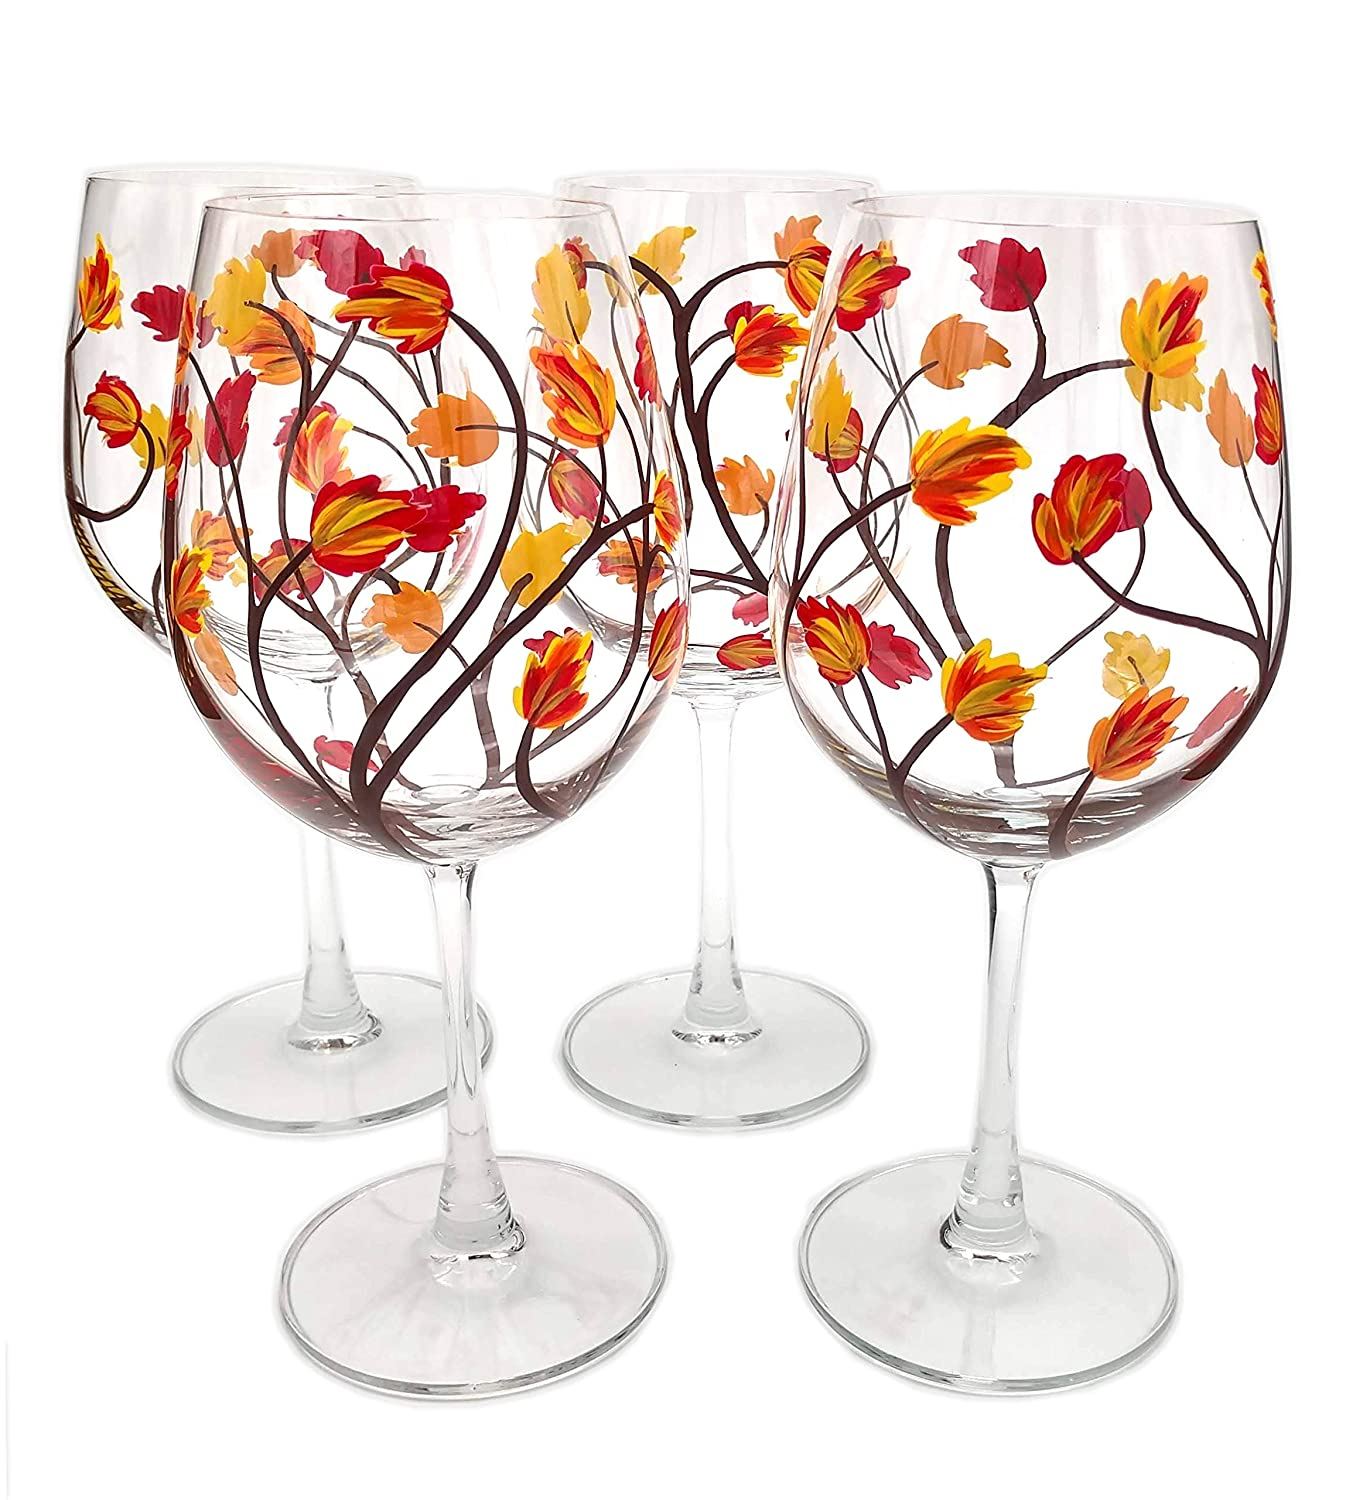 sale 4 Limited price Fall Leaf Stemmed Wine Glasses Hand - Painted of Set Four